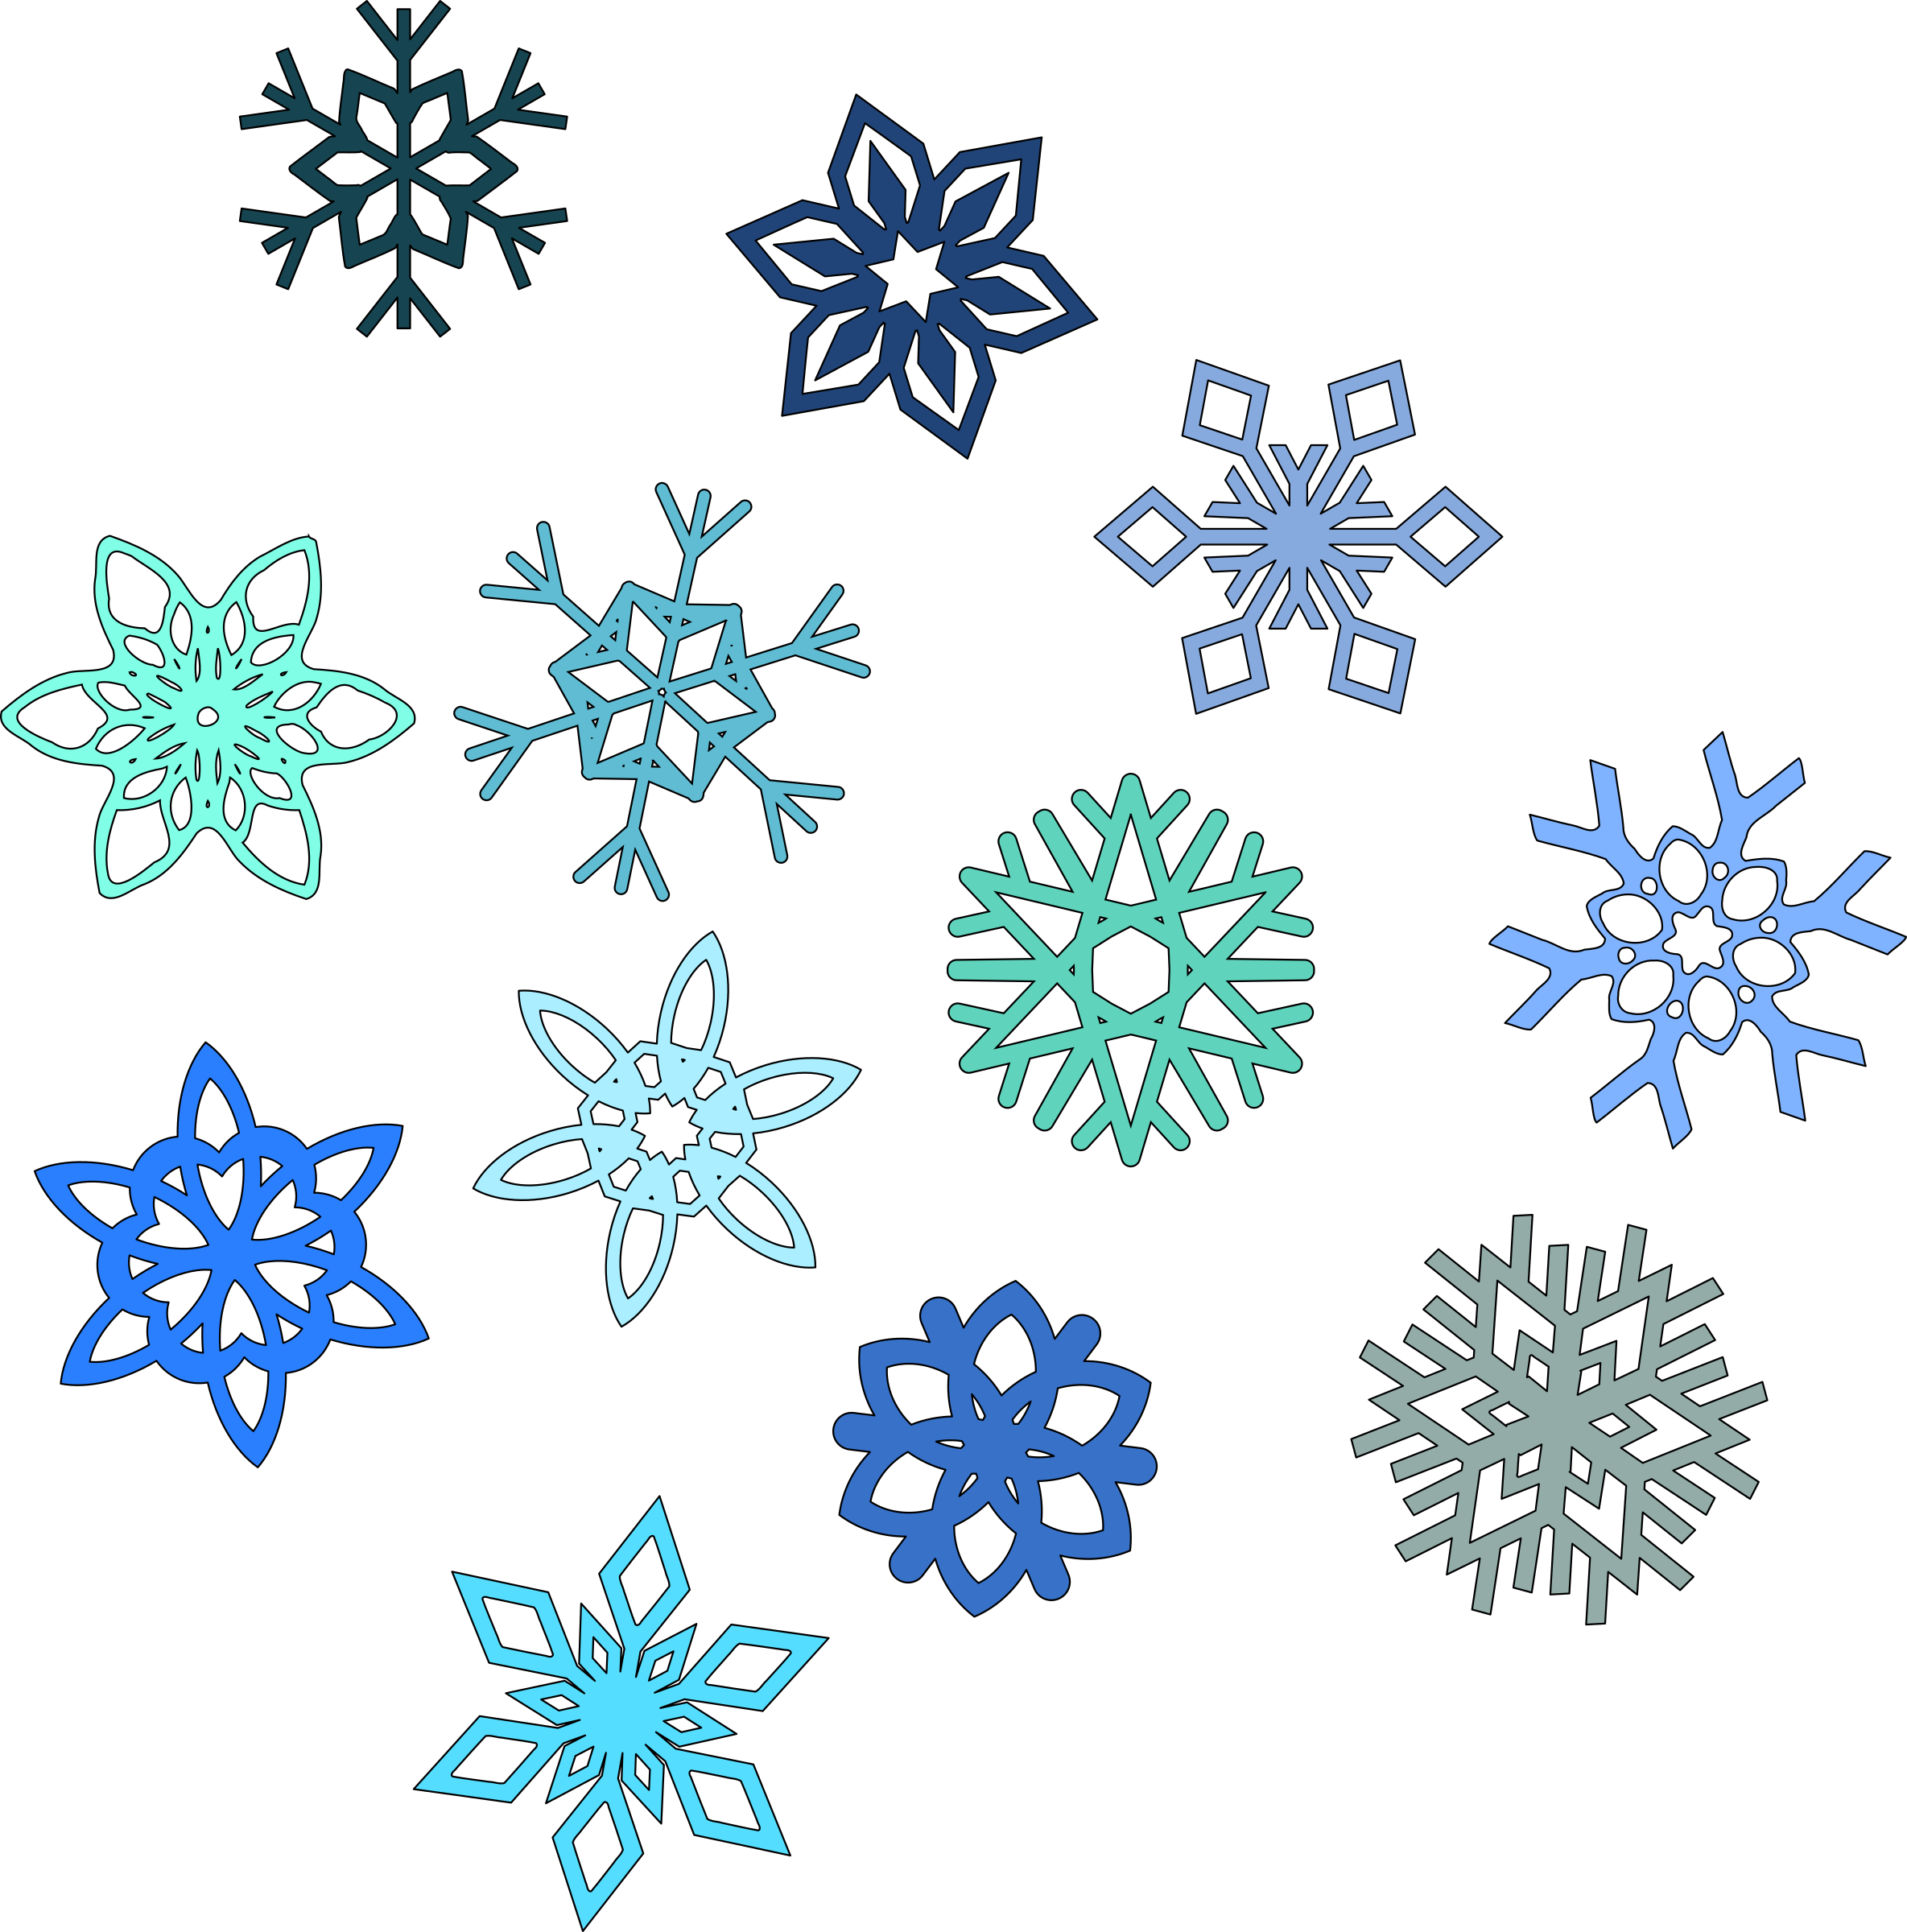 Snowflake clipart t png black and white library Keeping a Snow Journal | Pinterest | Scrapbooking png black and white library